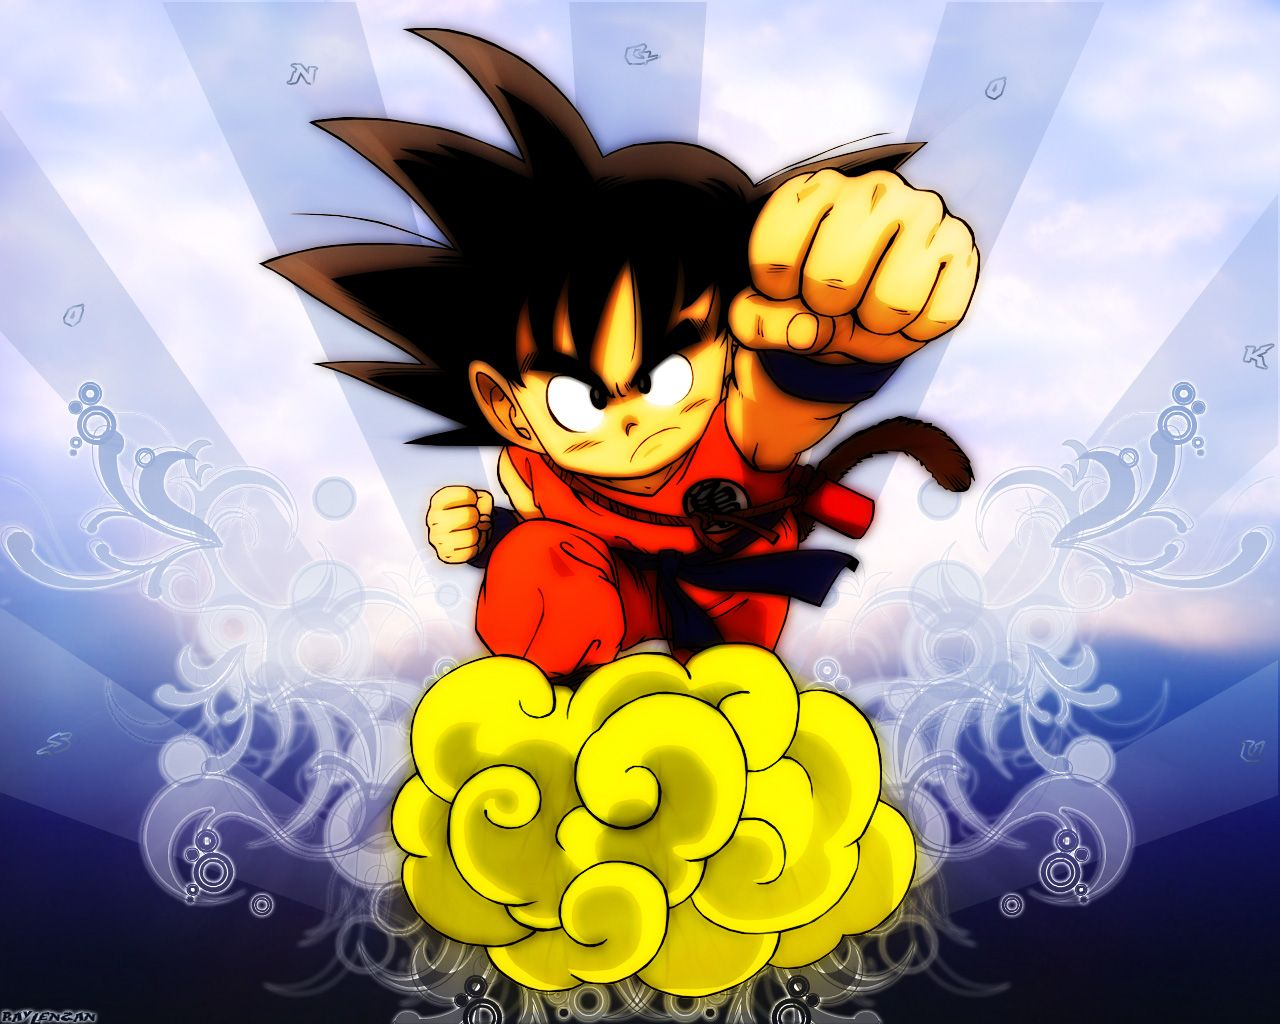 Dragon Ball...Back when I would race home after school so